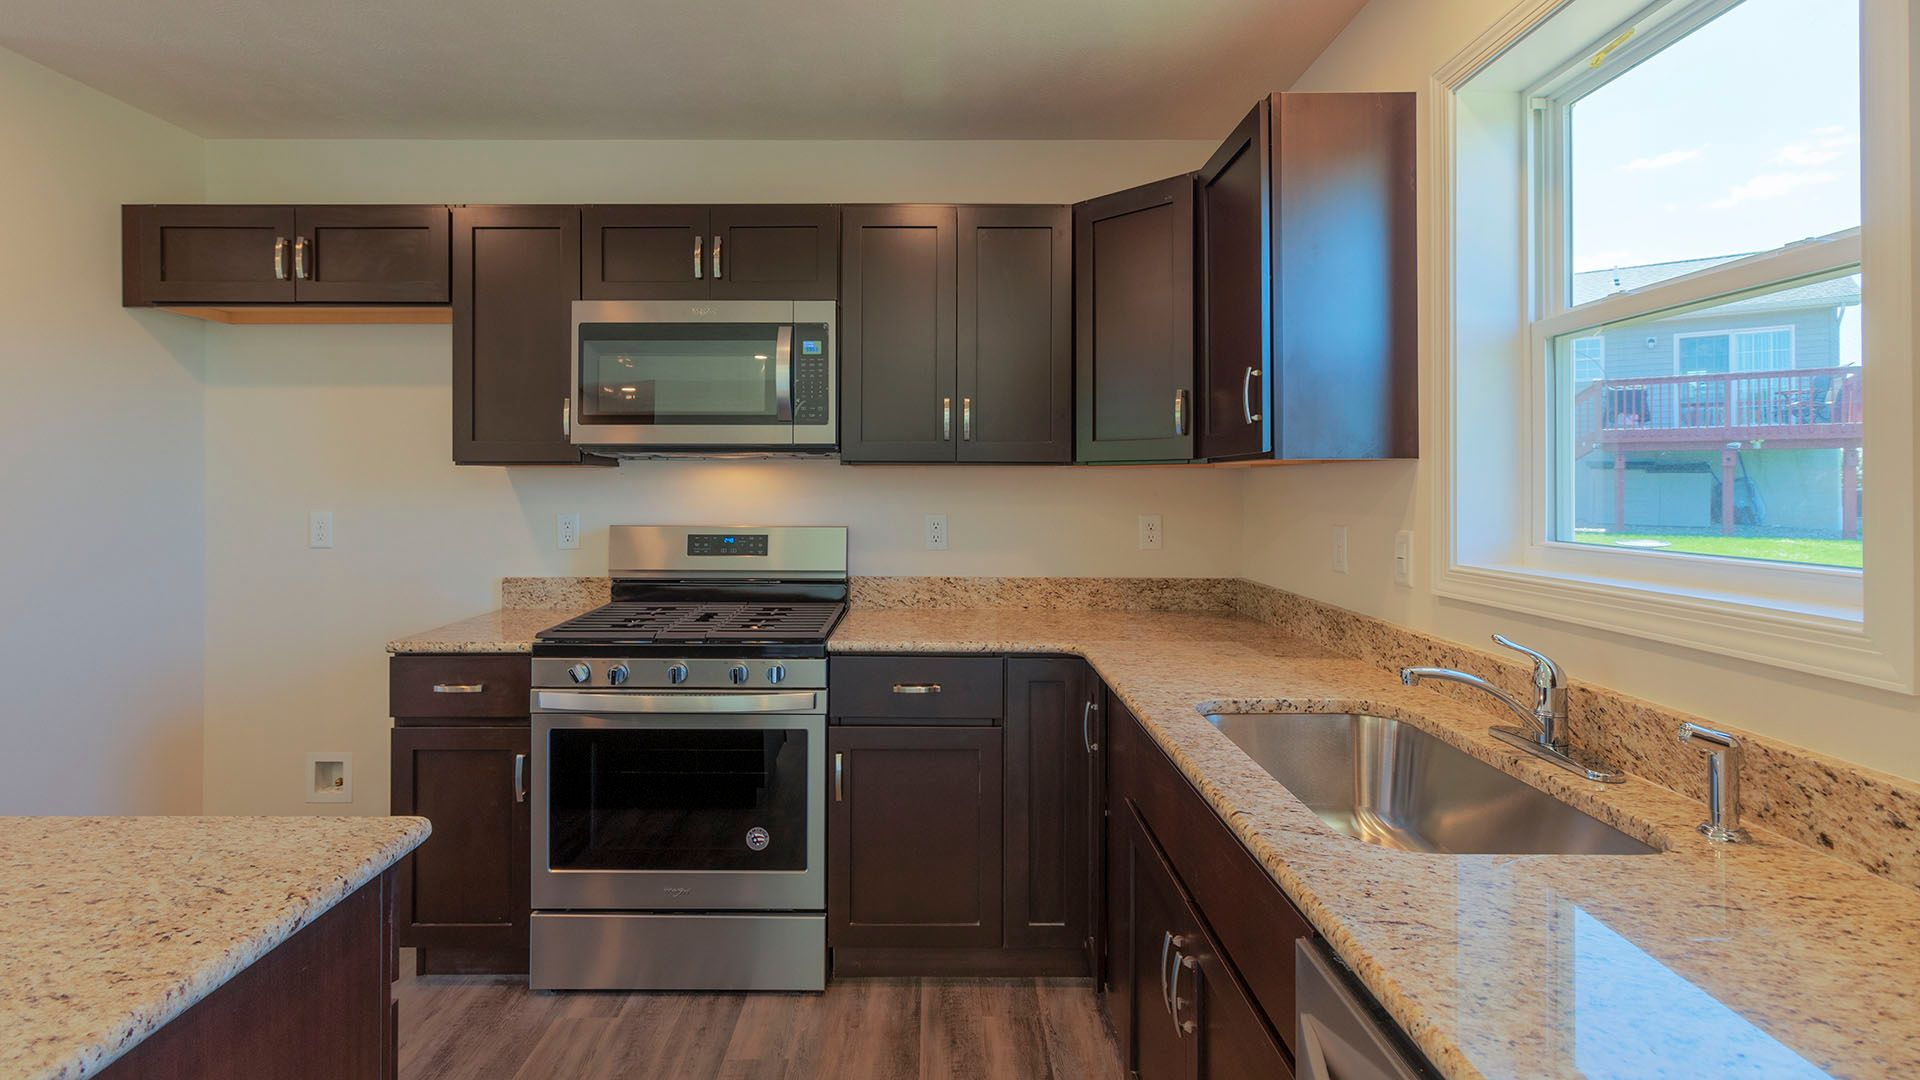 Kitchen featured in the Norwood By S & A Homes in State College, PA